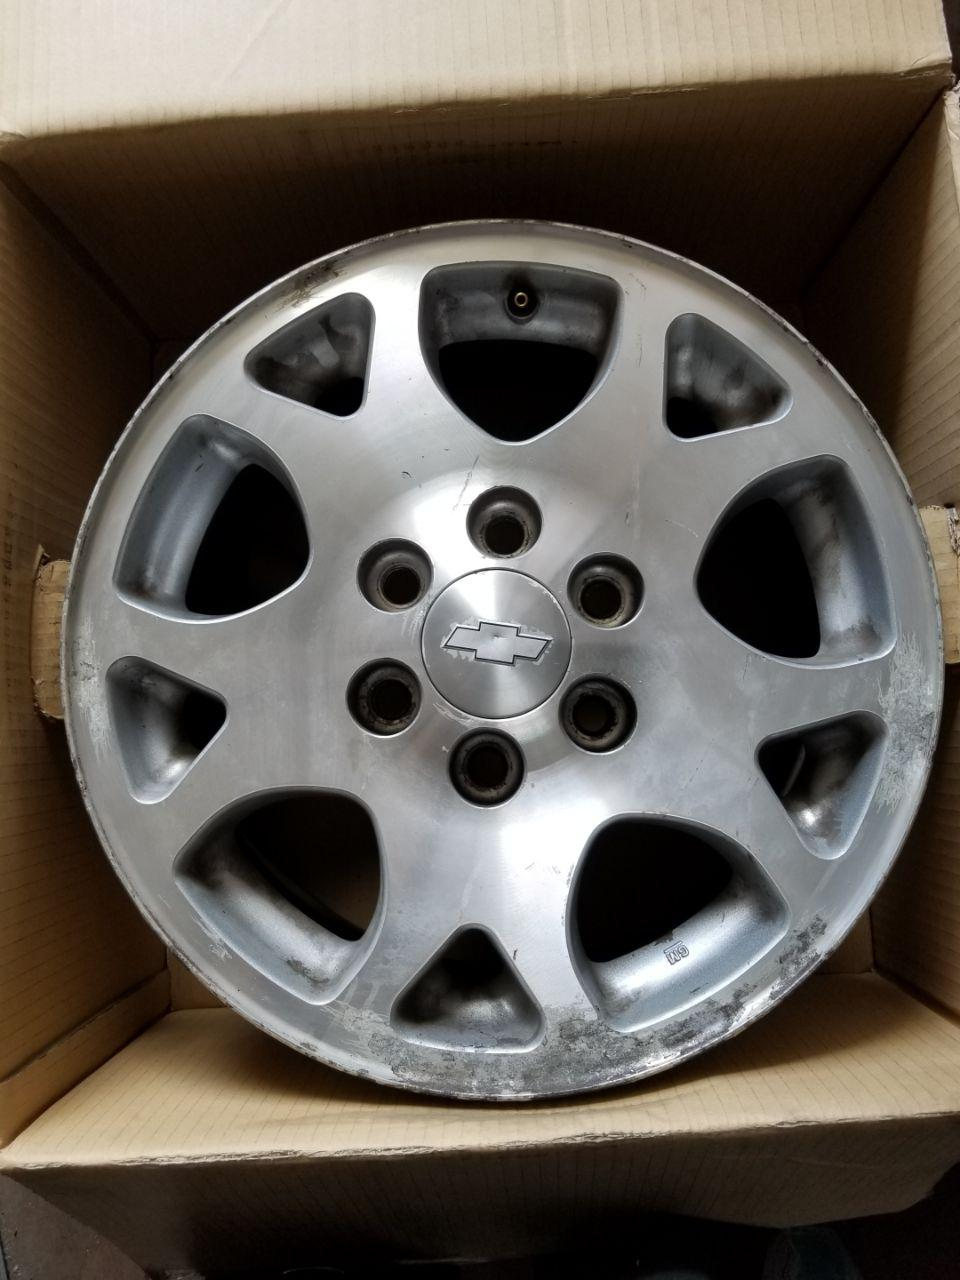 - OEM WHEELS - 2001-2006 GM SUBURBAN 17x7.5 5 SPLIT SPIKES Hollander #5117 /  USED